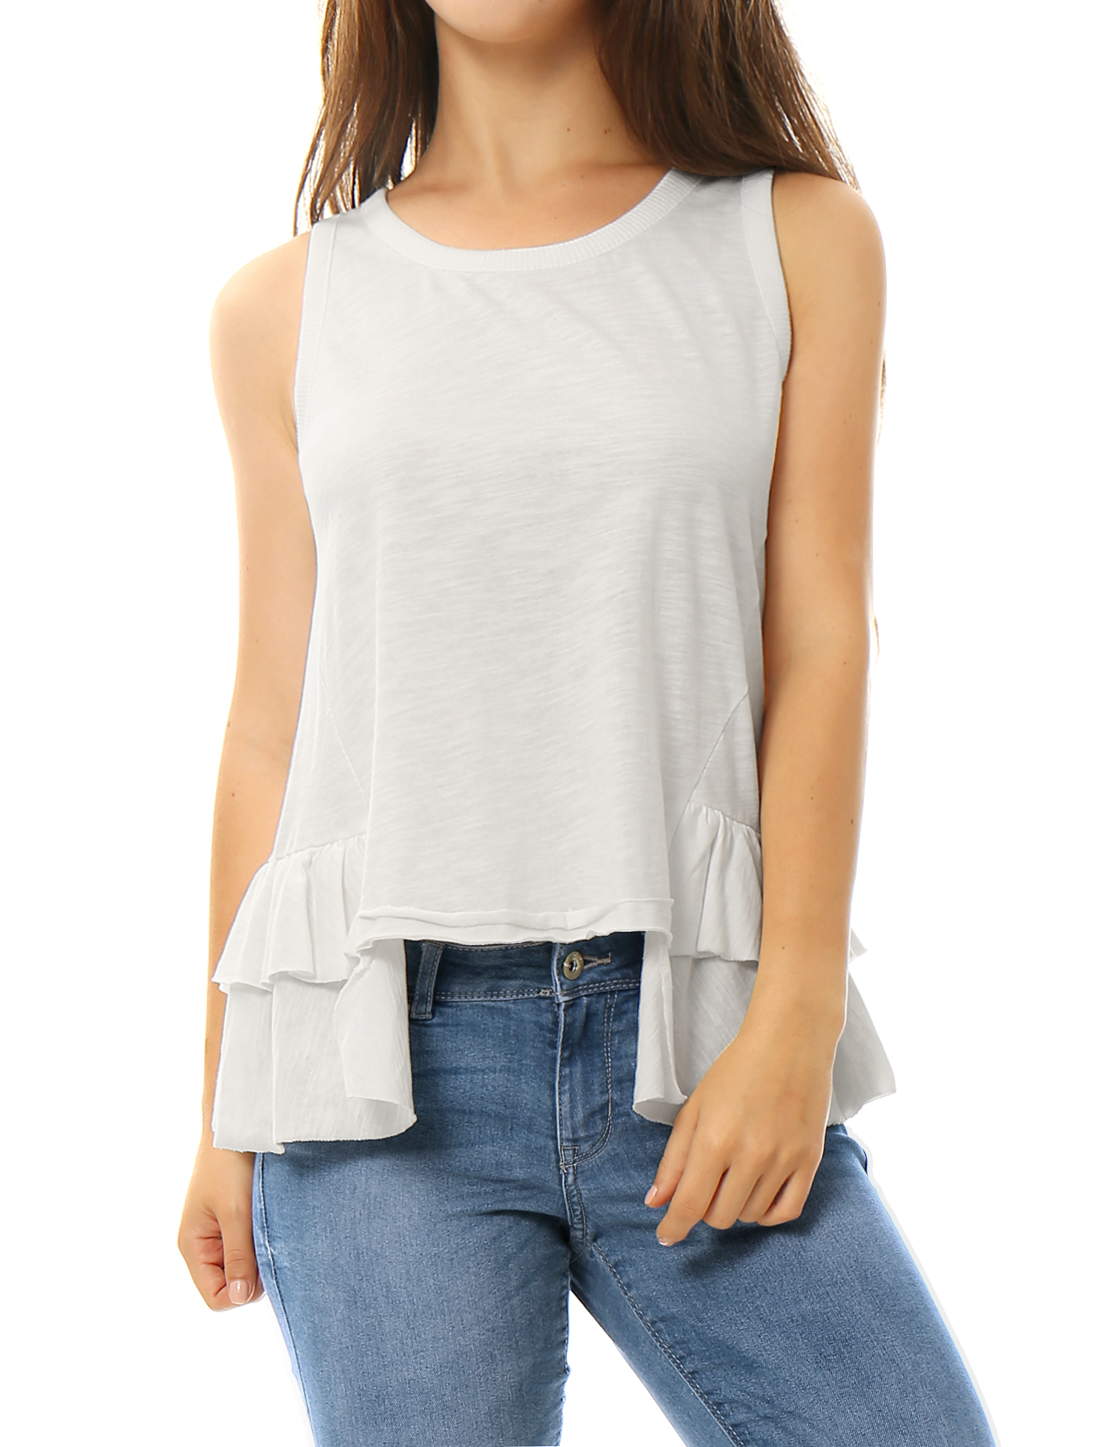 Women Scoop Neckline Layered Ruffle Hem Tank Top White XL